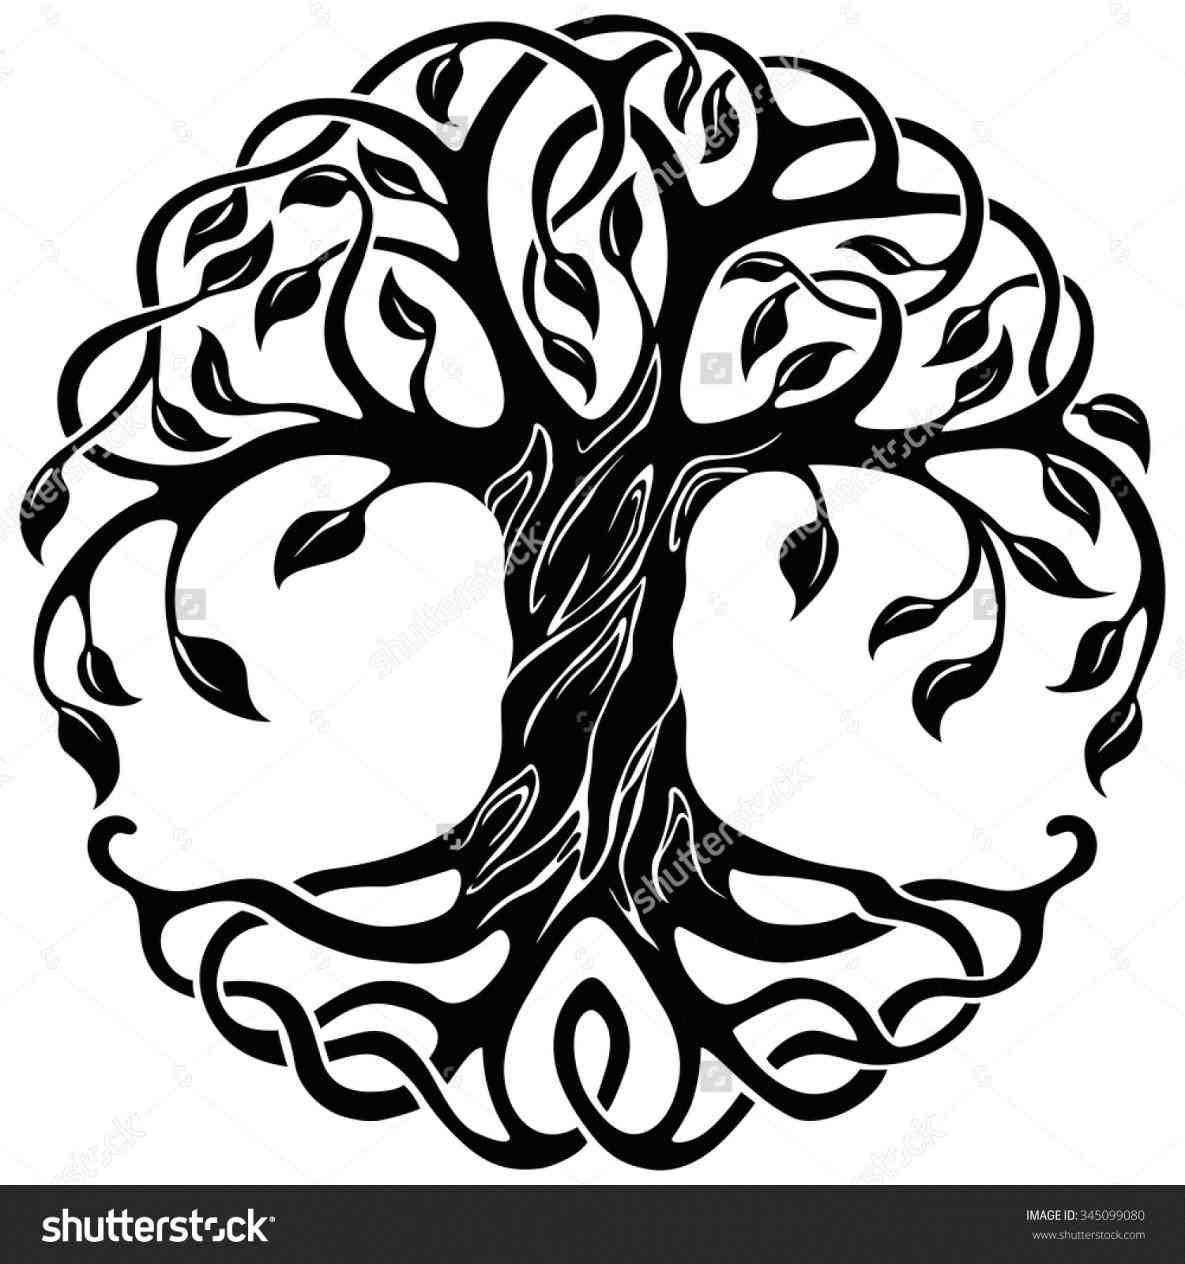 Tree of life symbol celtic symbols pinterest life What tree represents family